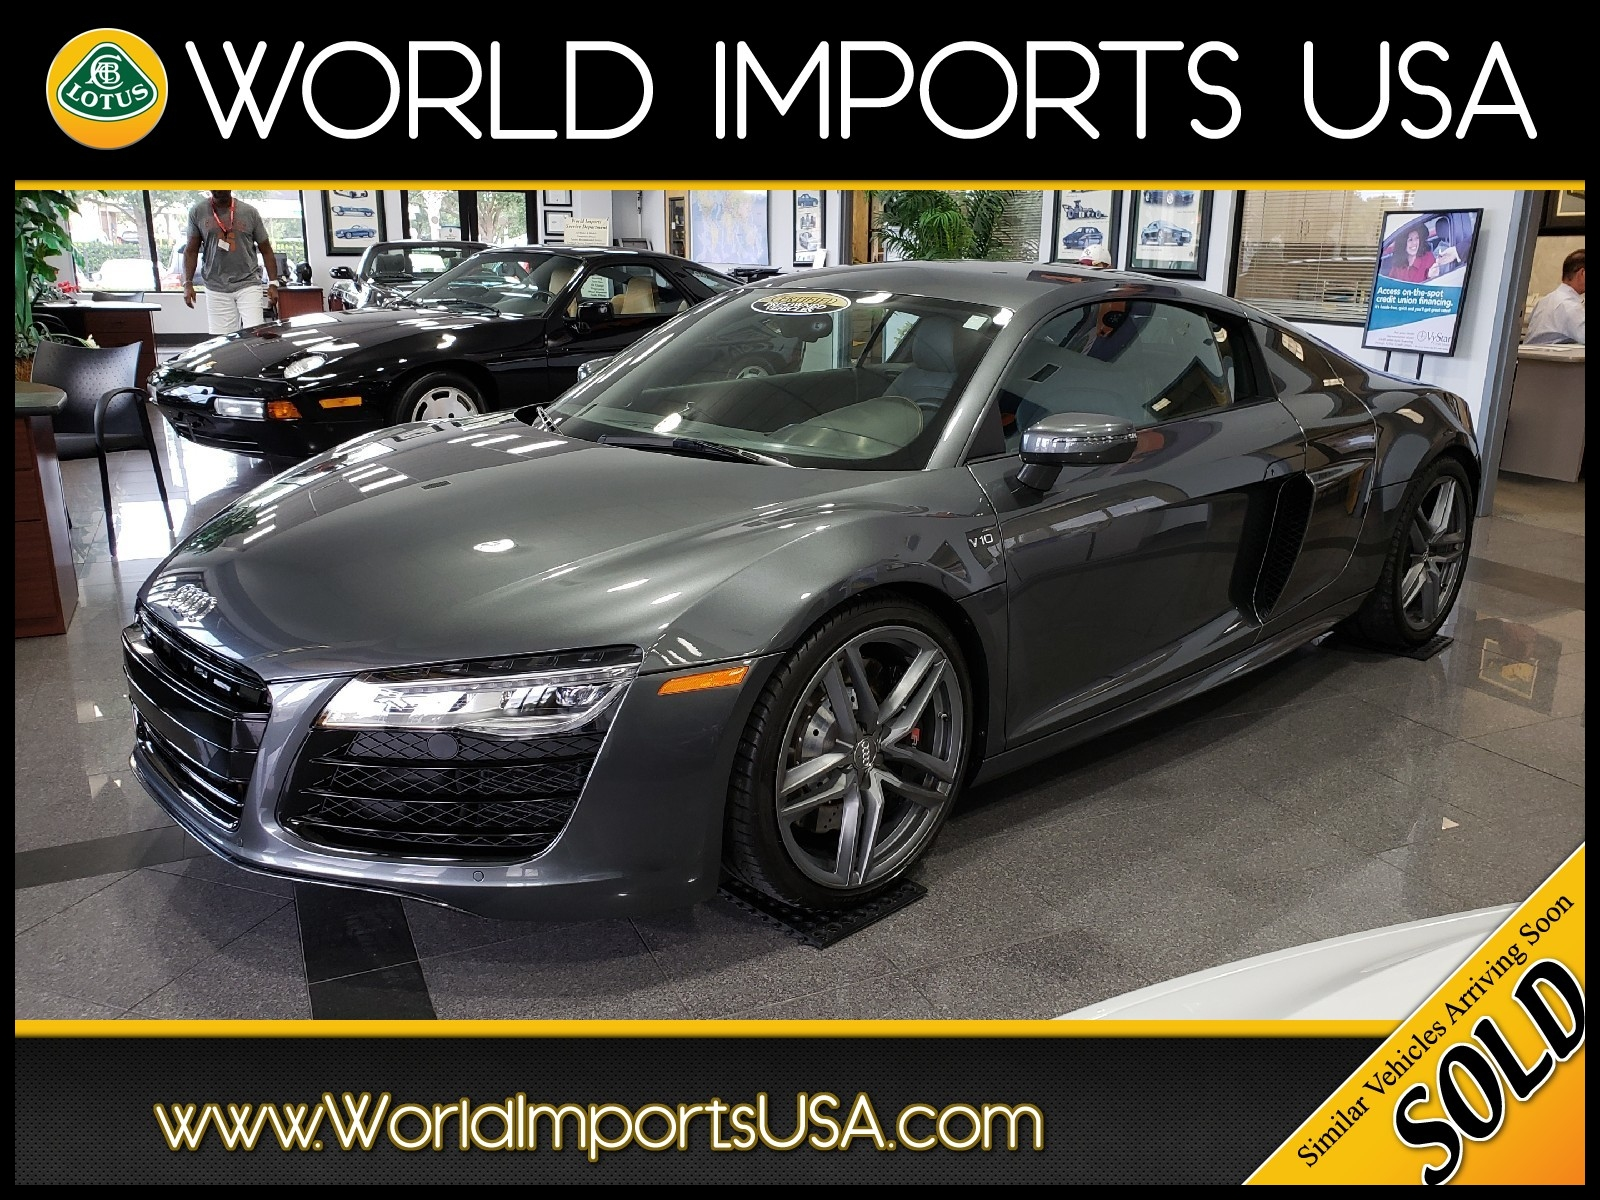 Used 2014 Audi R8 V10 Coupe Msrp $175 950 00 For Sale in Jacksonville FL World Imports USA Serving San Marco Ponte Vedra Beach & Palm Valley